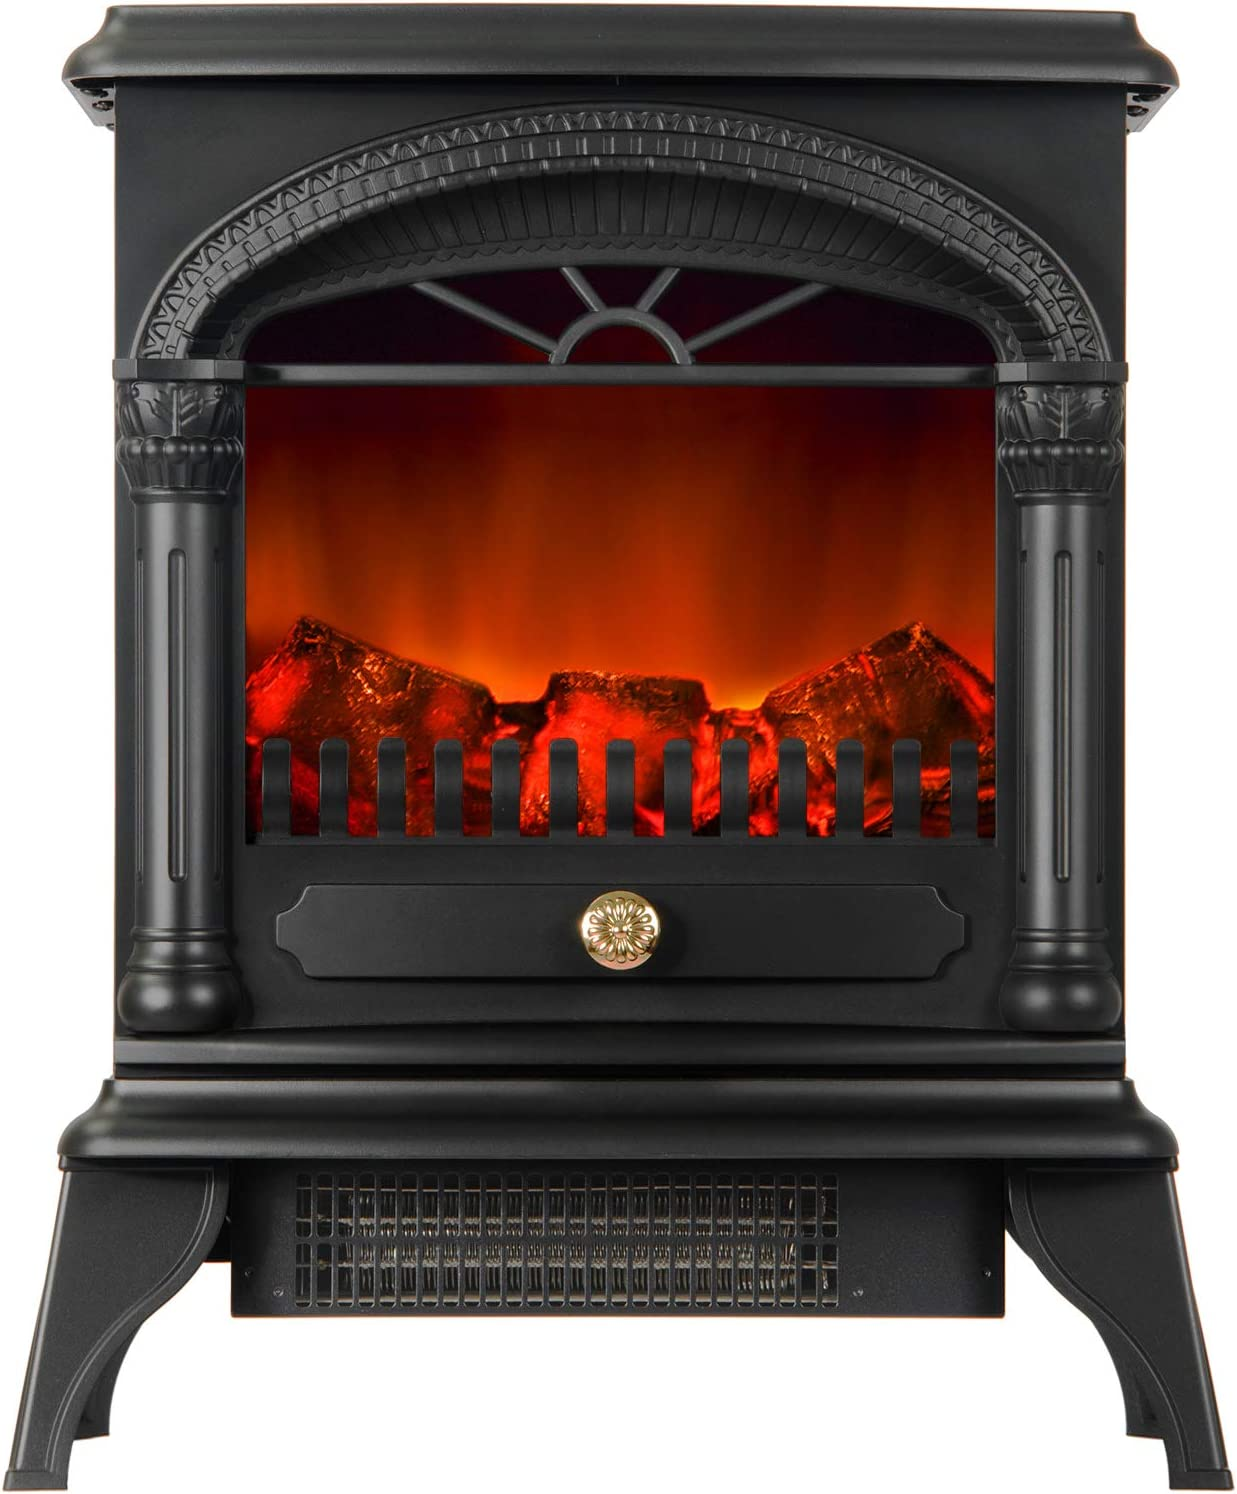 Freestanding Portable Heater,With Log Wood Burner Effect 900-1800w Electric Fire Overheat Protection